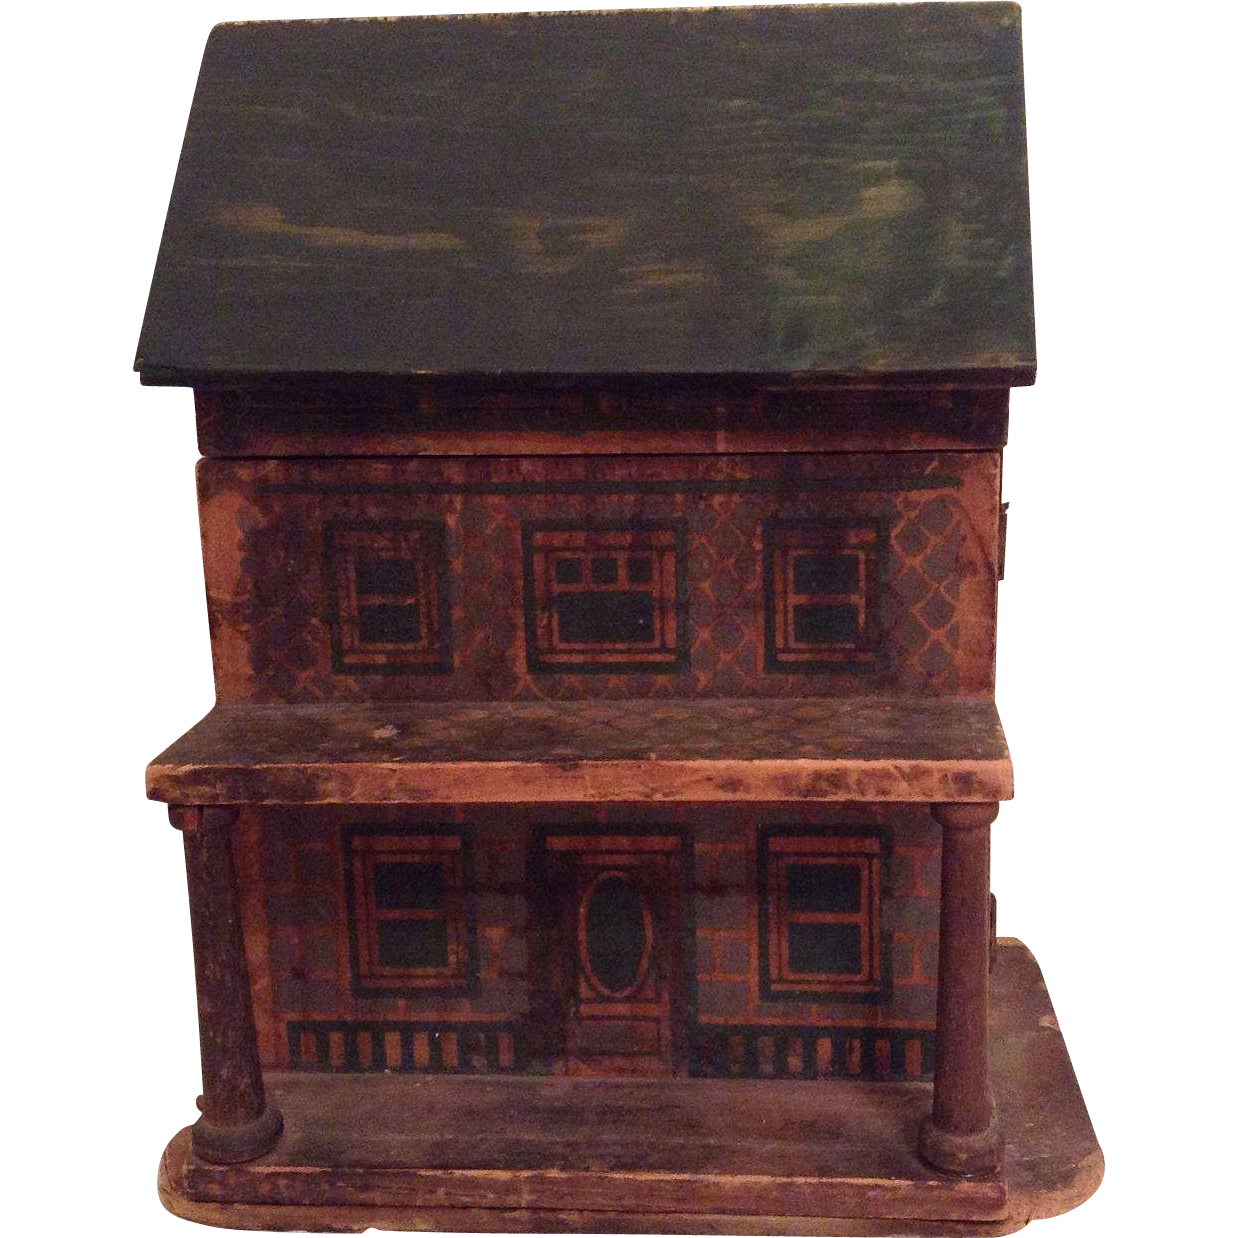 reflections in 19th century dolls house Somewhat overshadowed a view of a doll's house as  during the course of the  nineteenth century, the notion of imagination under-  reflection of himself.